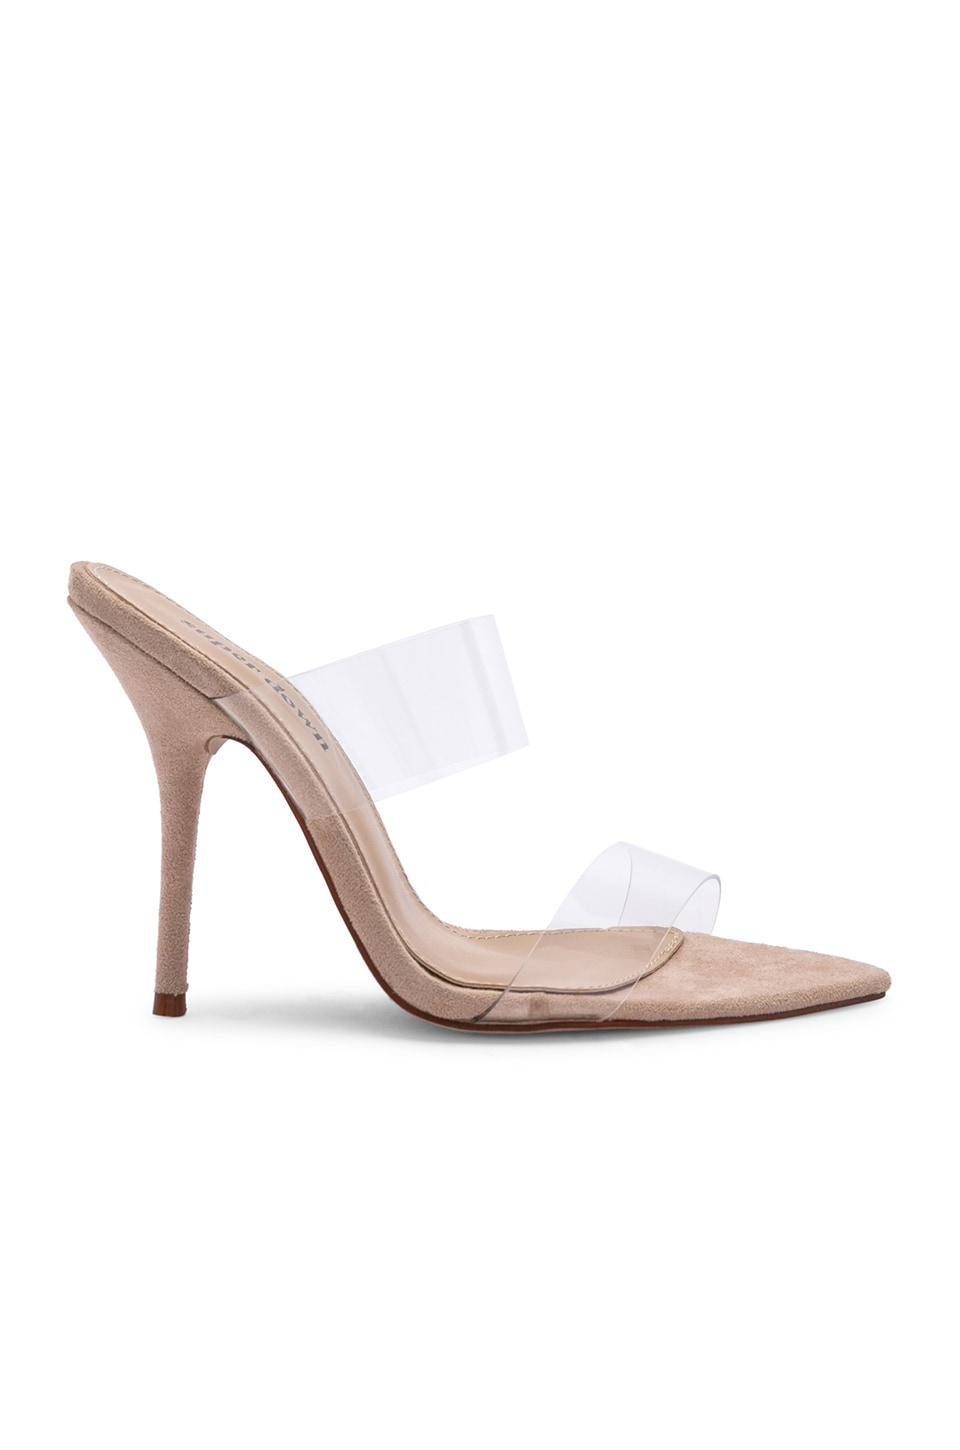 superdown Myra Heel in Nude